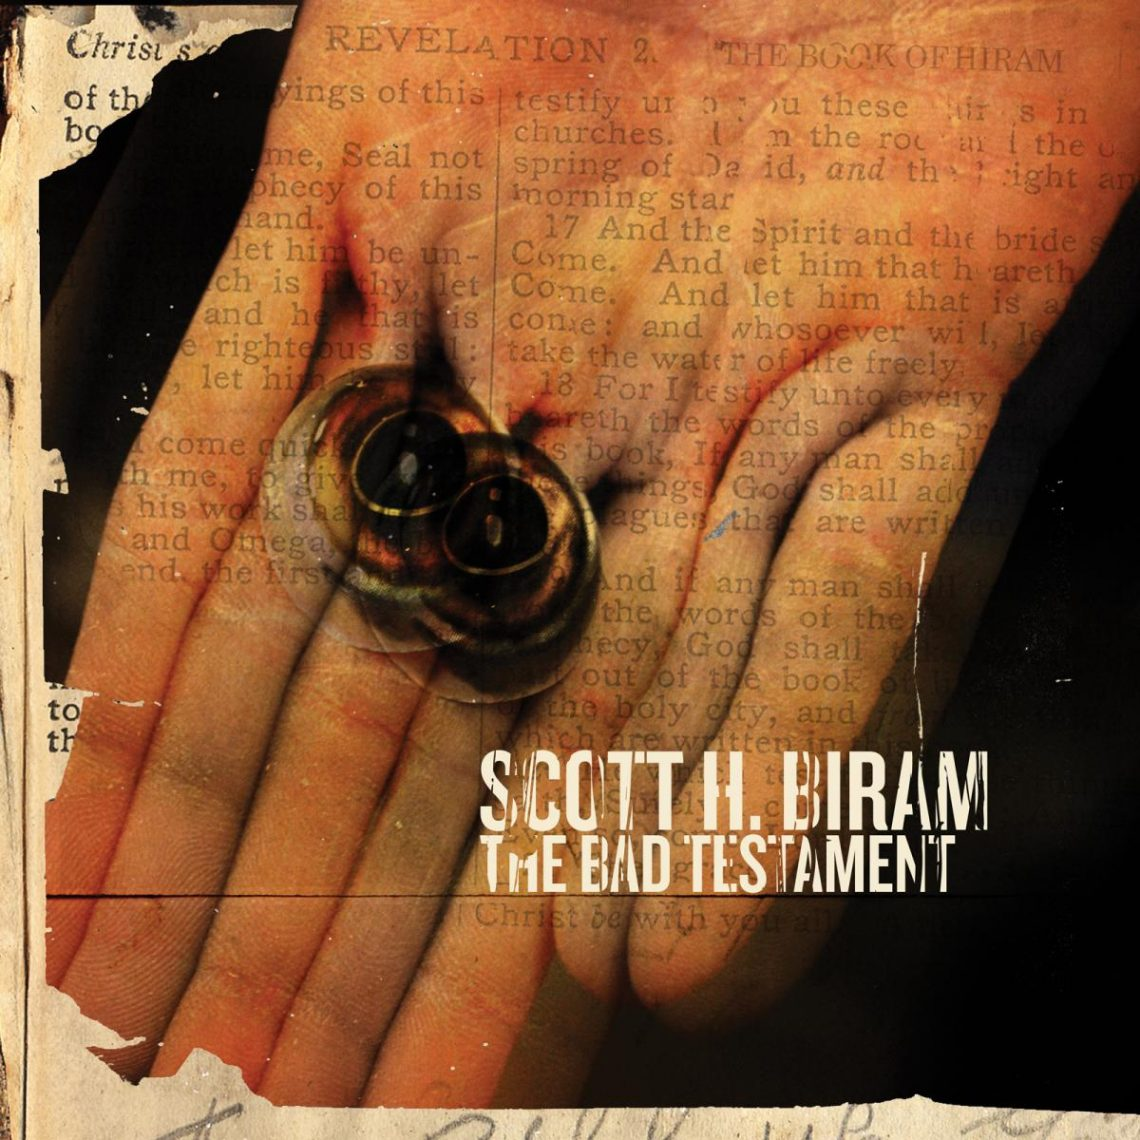 the-bad-testament